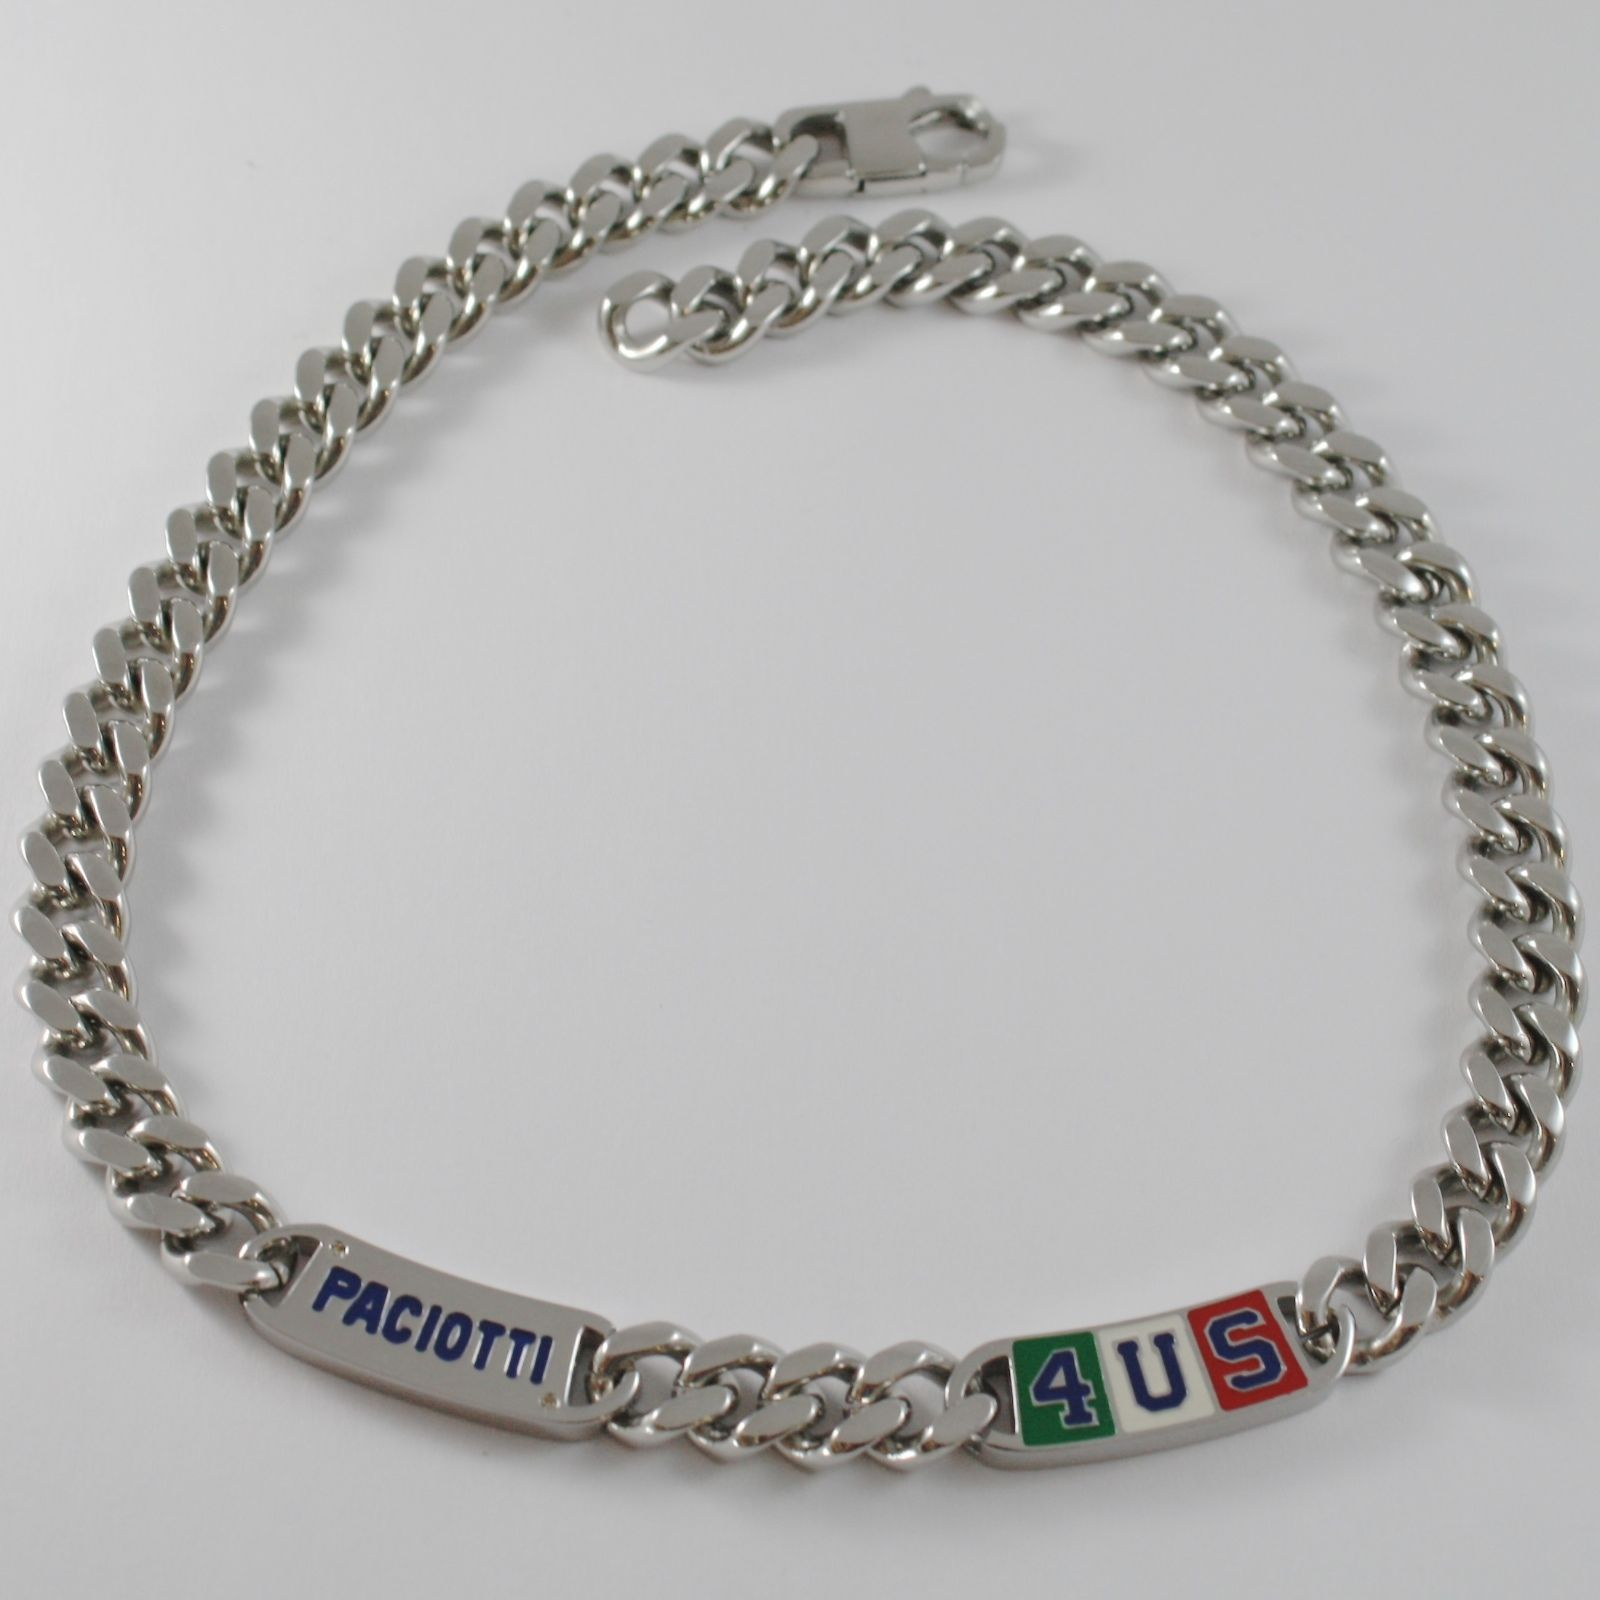 STAINLESS STEEL BIG GOURMETTE 4US PACIOTTI NECKLACE ENAMEL ITALIAN FLAG 4UCL0123